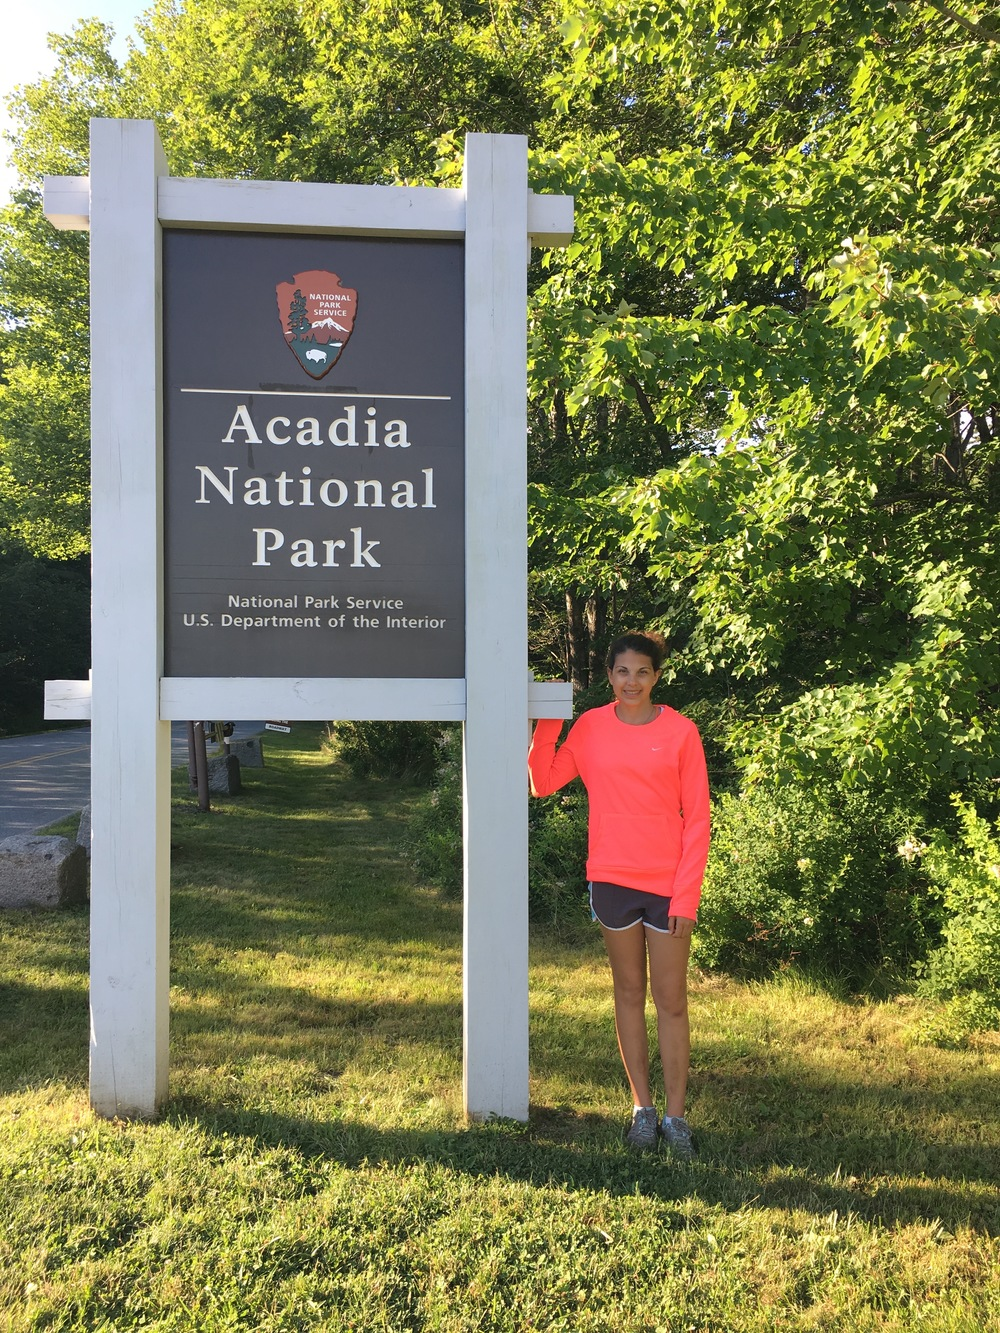 DAY 2: Hiking at Acadia National Park